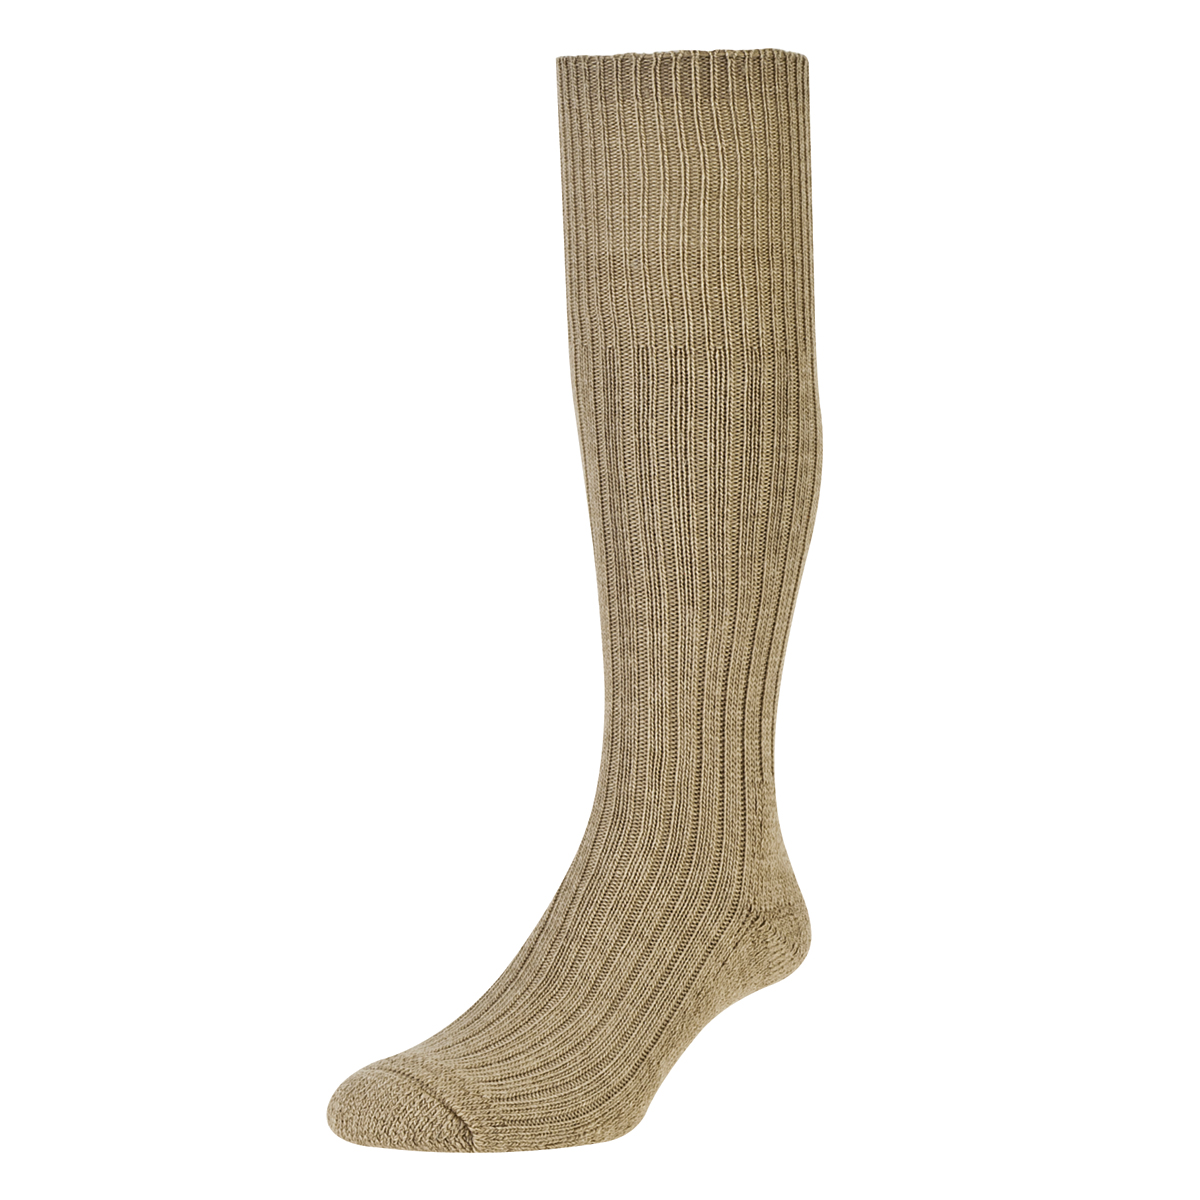 HJ Hall Commando Wool Socks, 6-11 UK Granary 12 pairs HJ3000